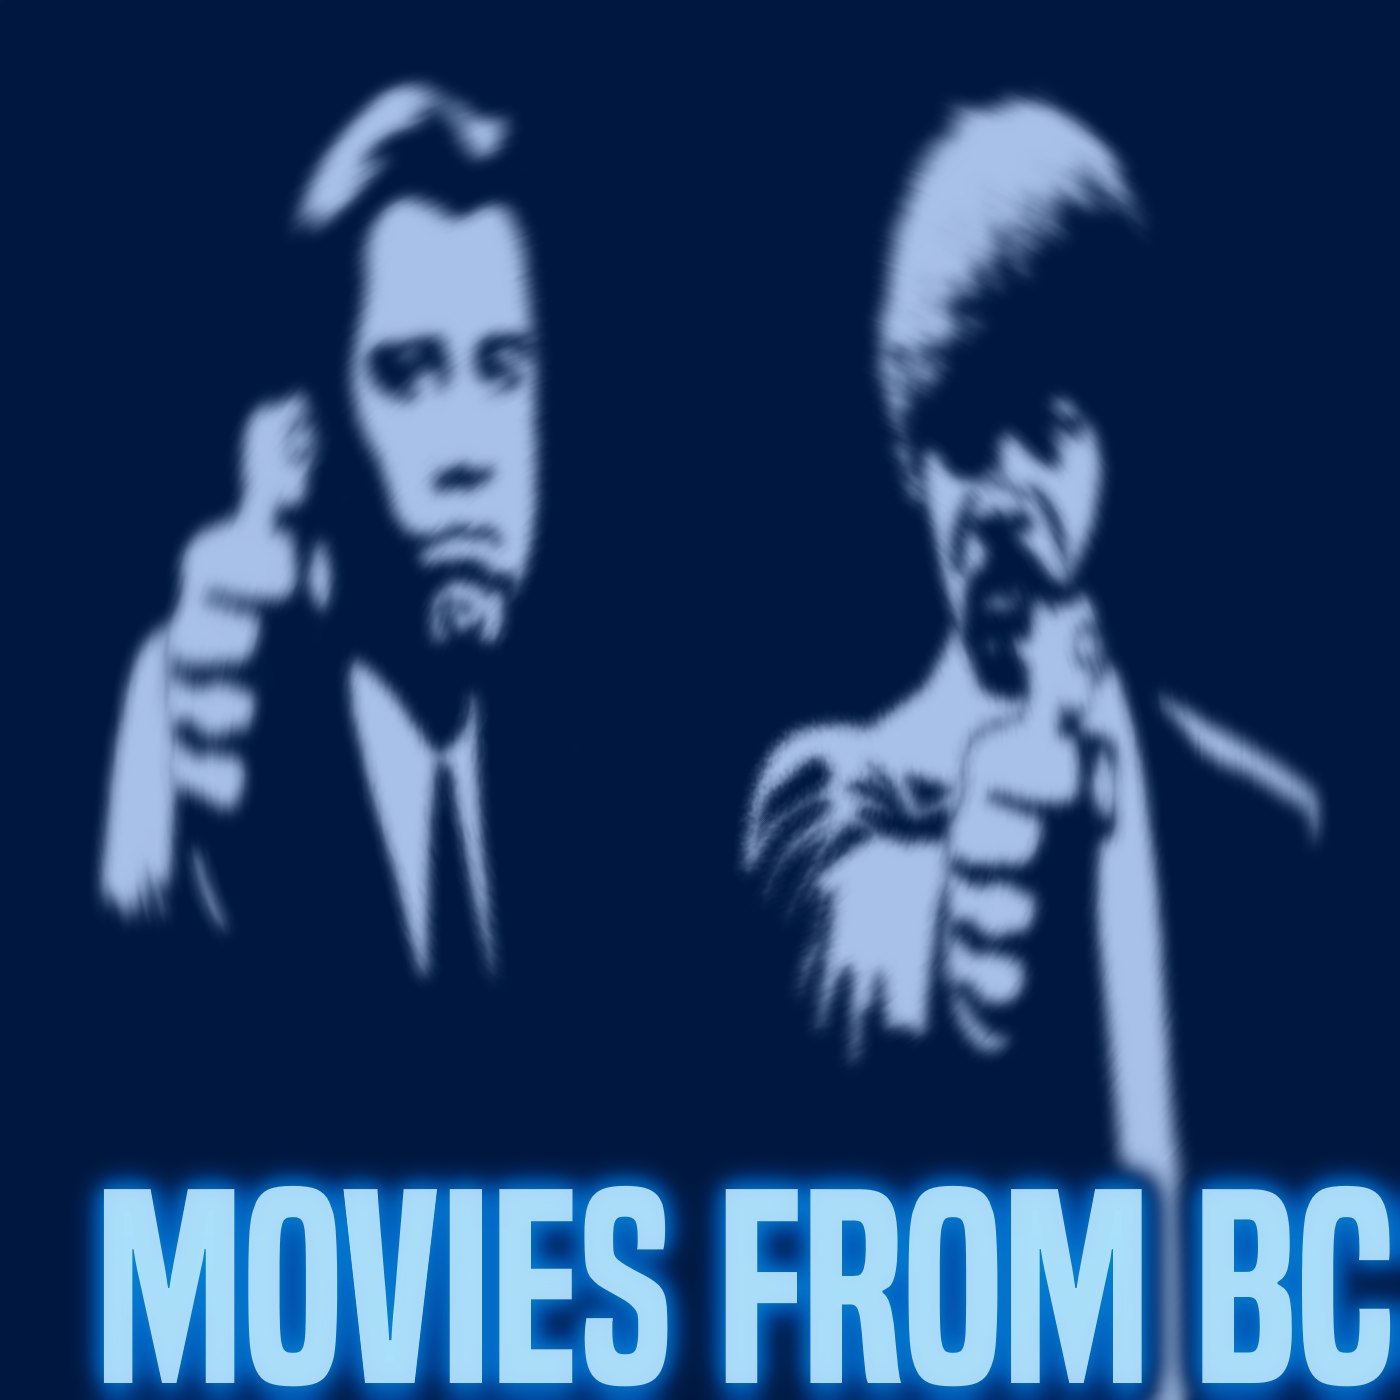 Movies from B.C. - 8BitDrum